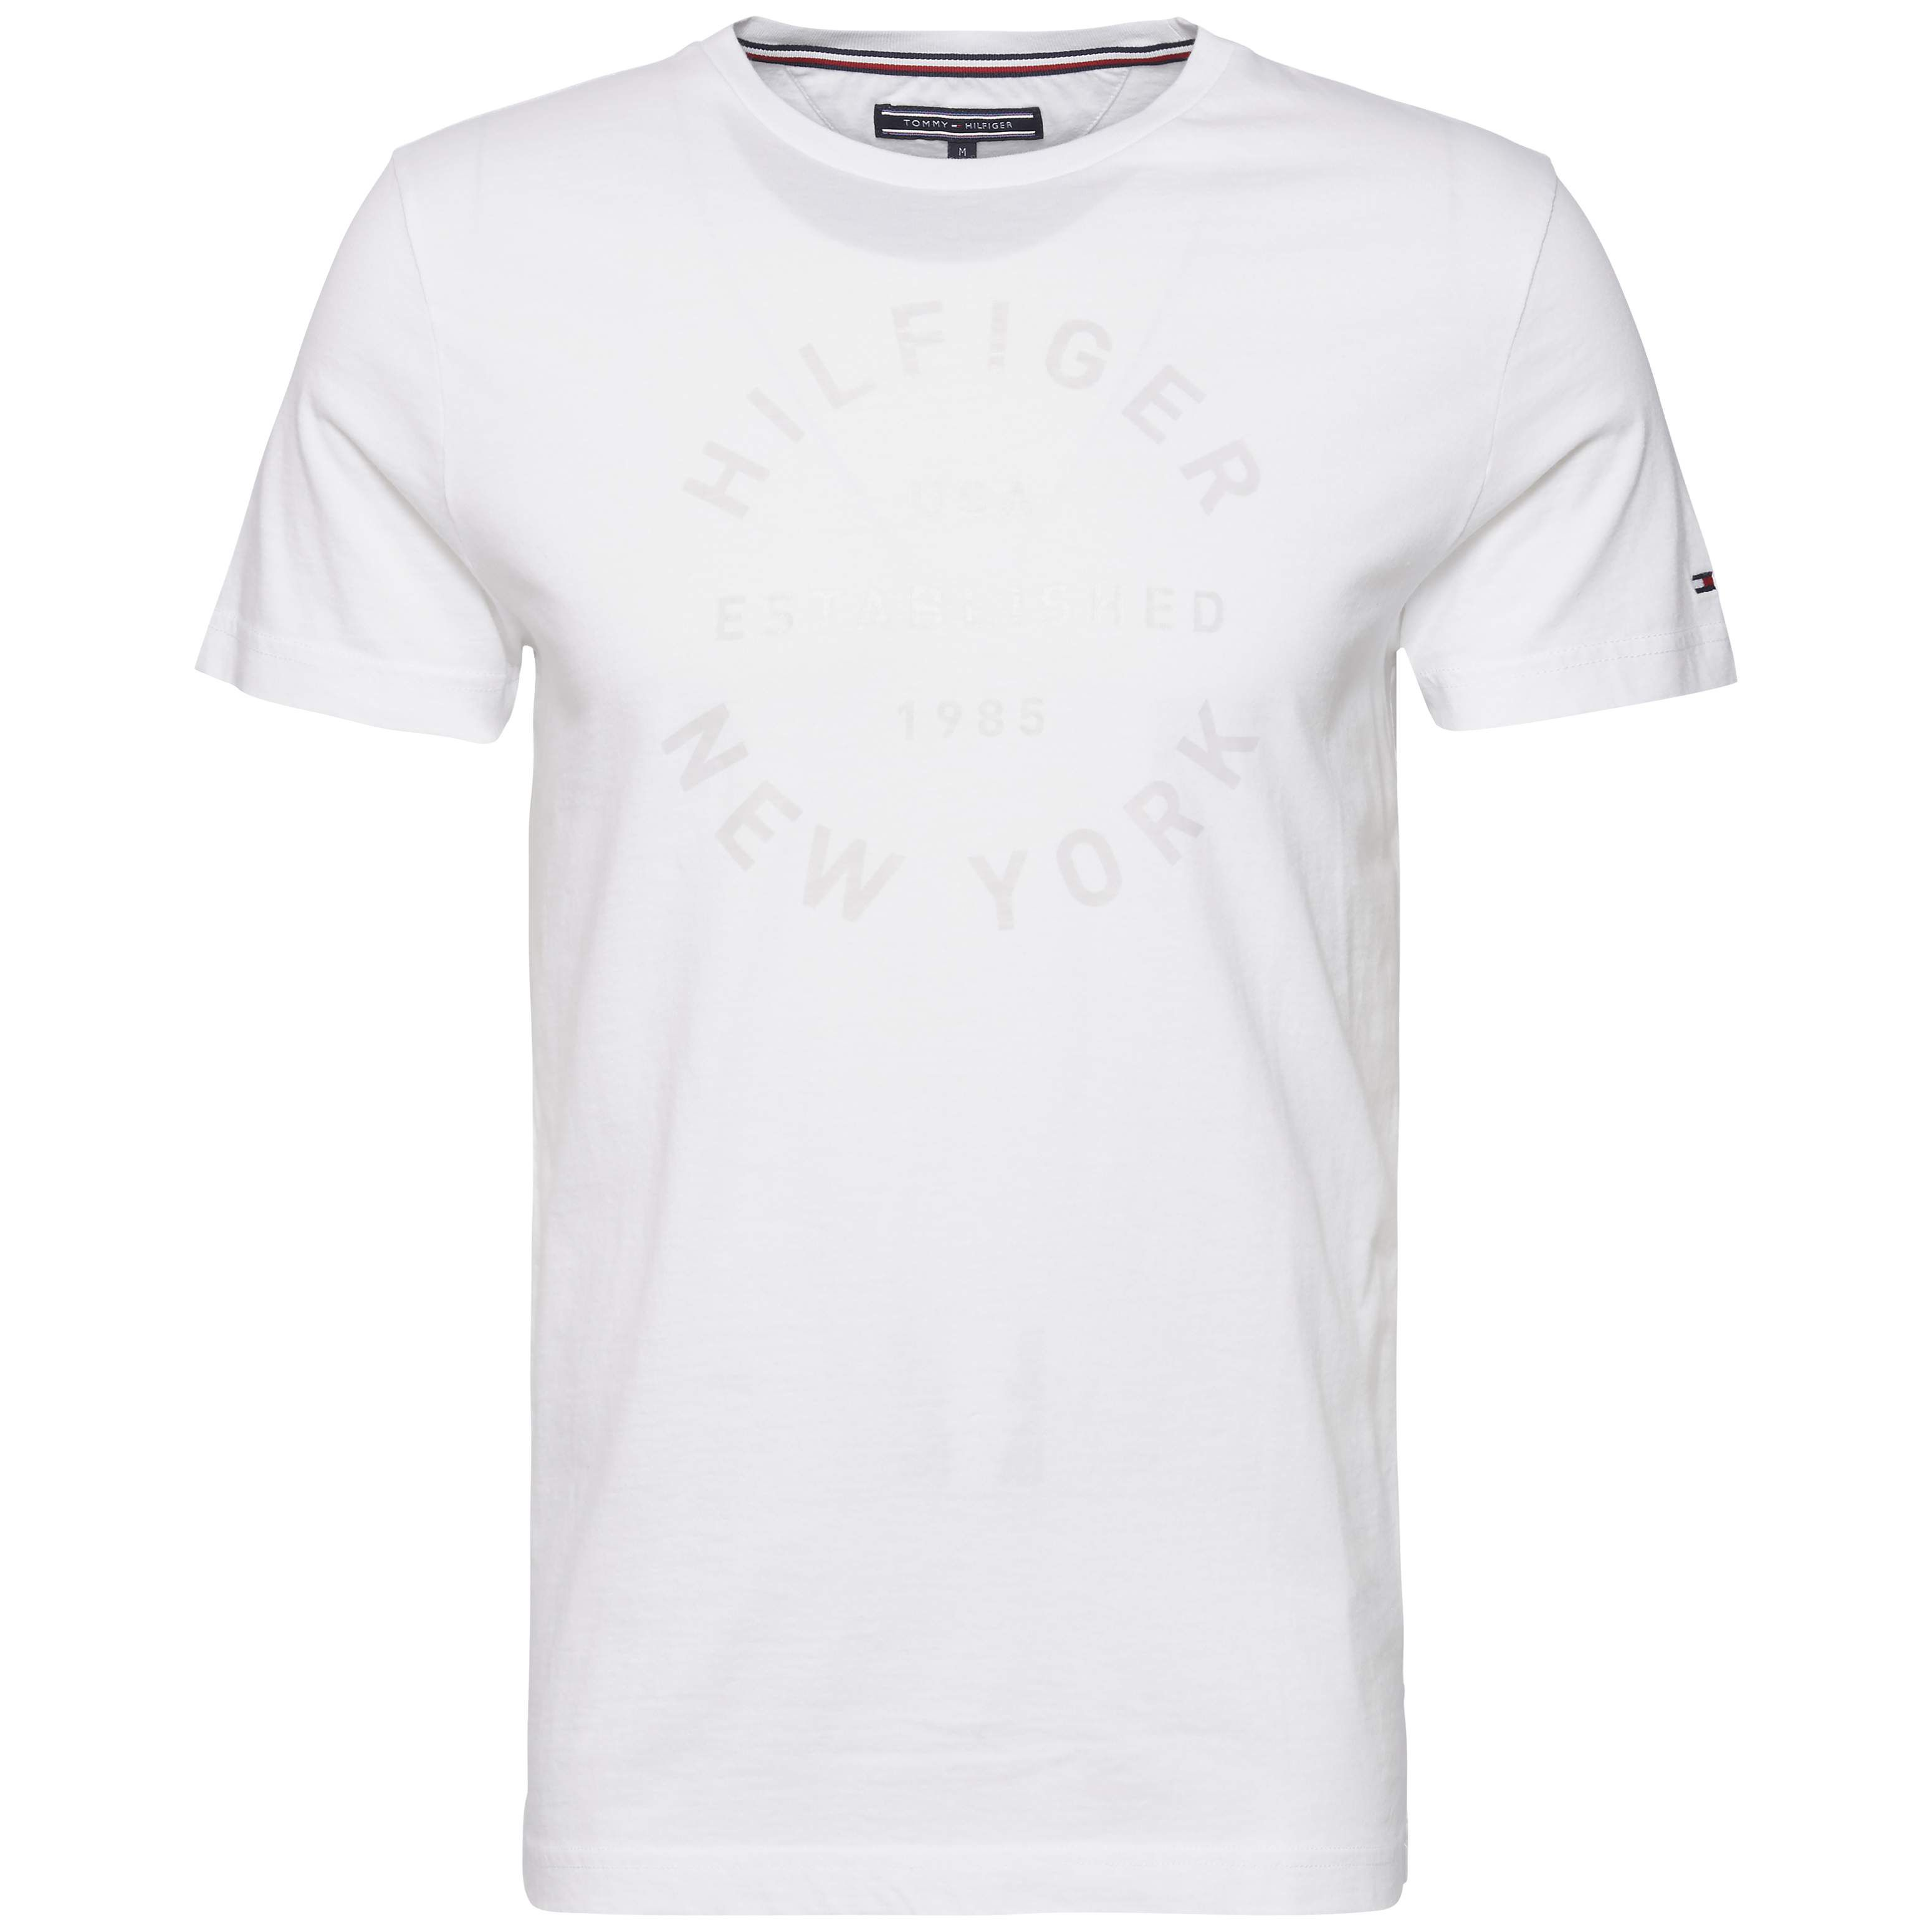 Men's Tommy Hilfiger Amos T-Shirt, White